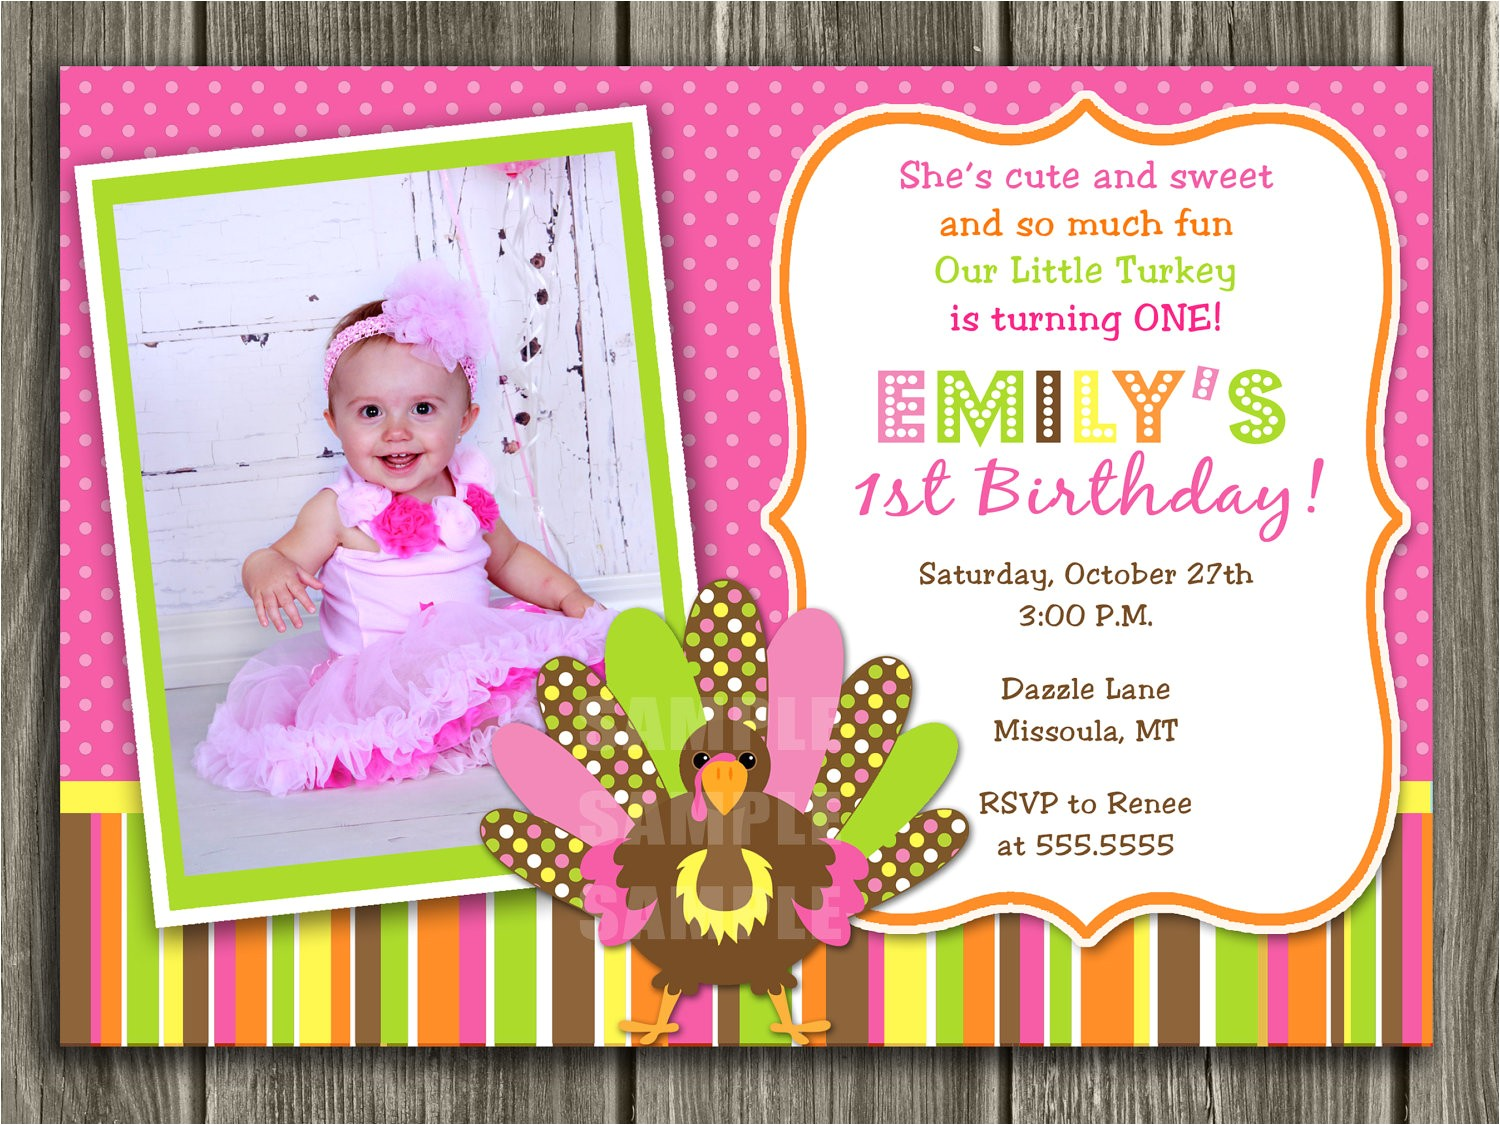 1st Birthday Invitation Card Matter In Marathi 1st Birthday Card format In Marathi 40th Birthday Ideas